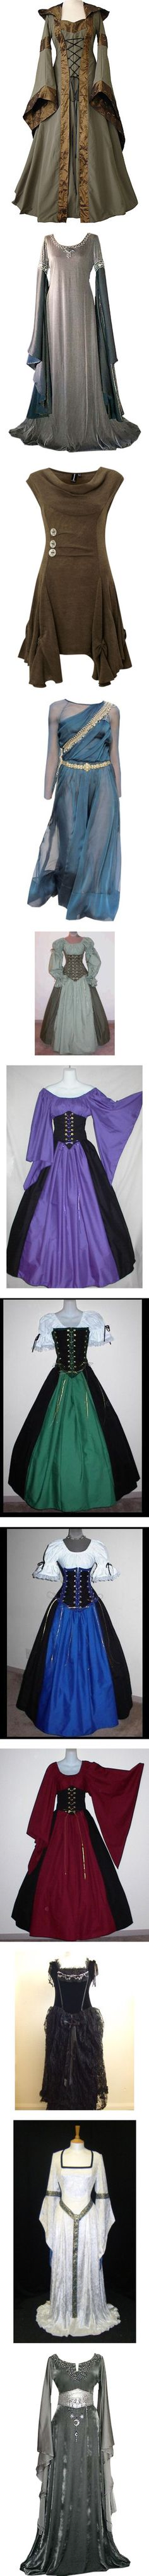 """""""Medival Dresses 1"""" by kia on Polyvore. I WANT THEM ALL I NEED THEM ALL TAKE MY MONEY!!!!"""